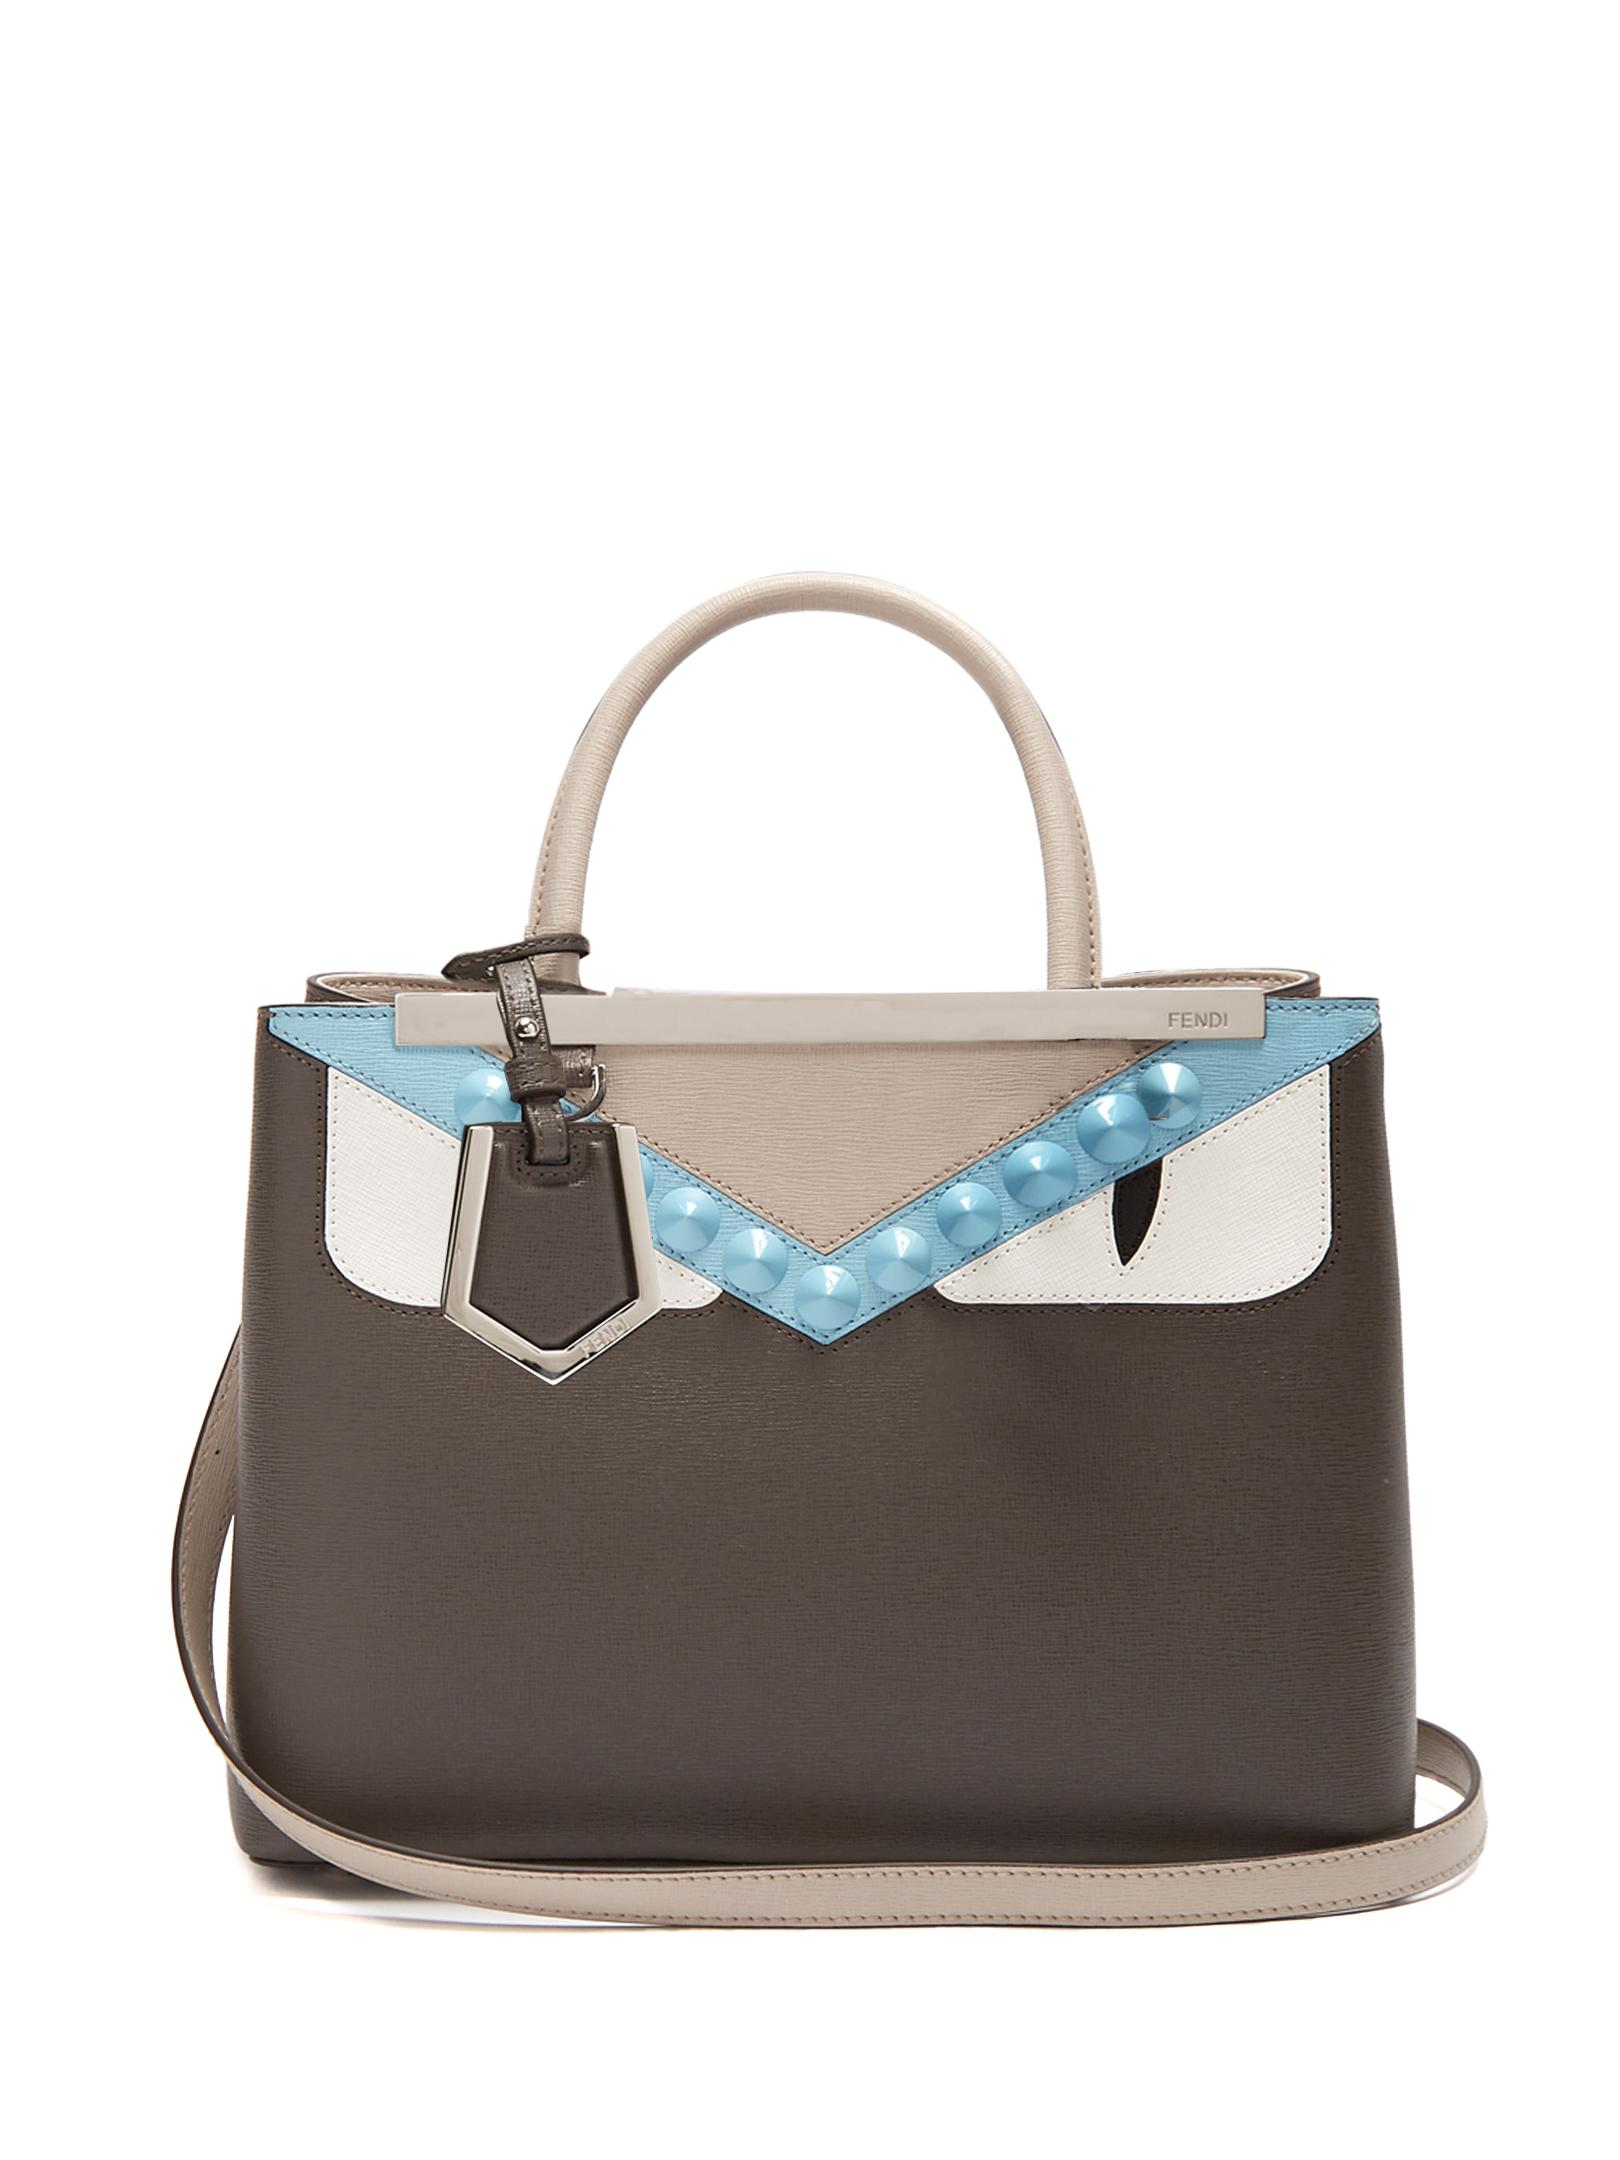 c6370558b3 Gallery. Previously sold at  MATCHESFASHION.COM · Women s Fendi 2jours  Women s Fendi Bag Bugs ...